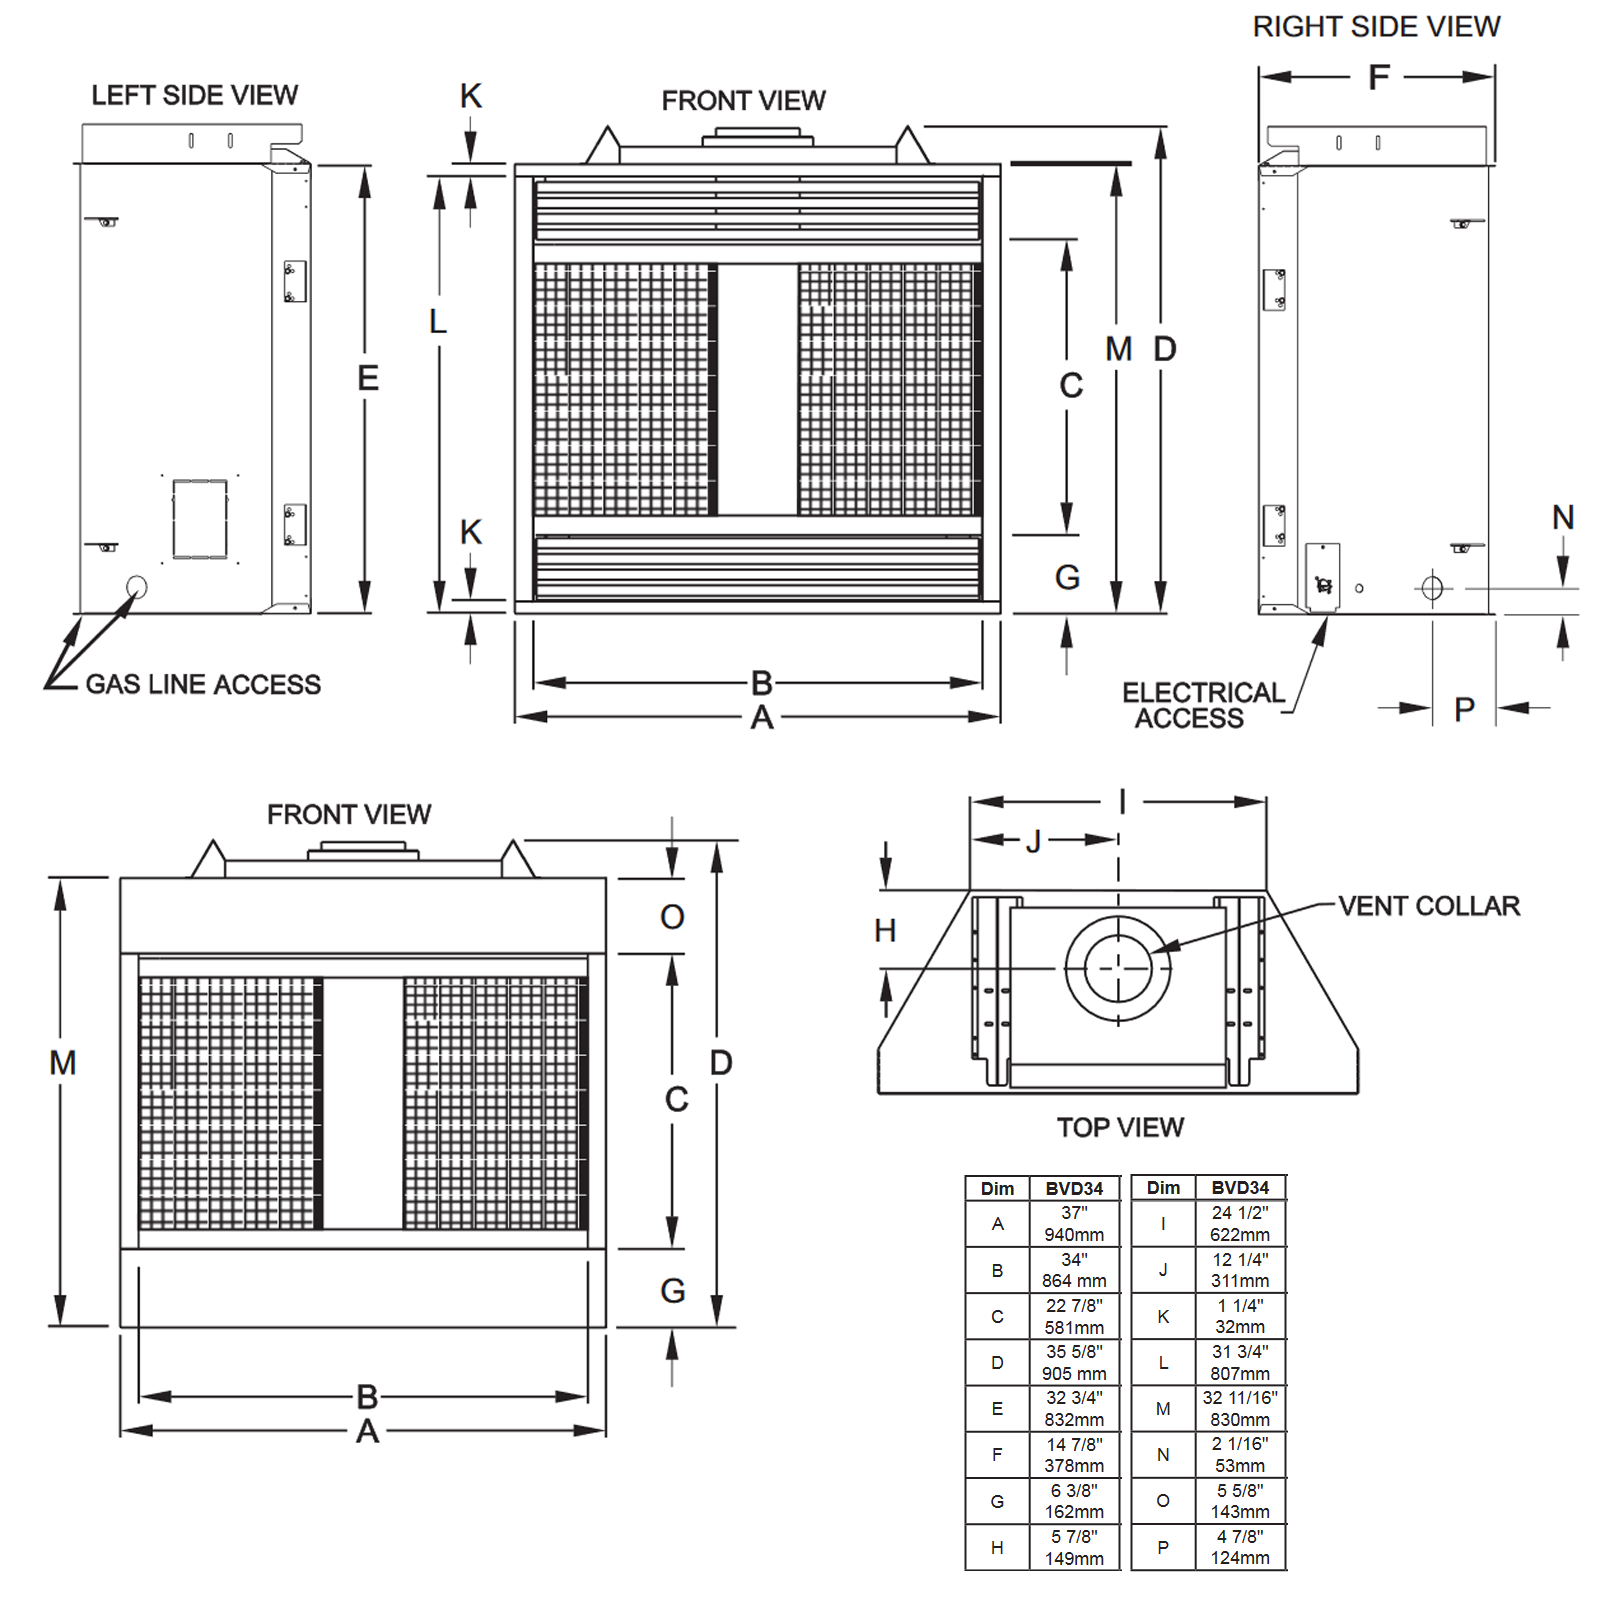 BVD34 Technical Drawing 1